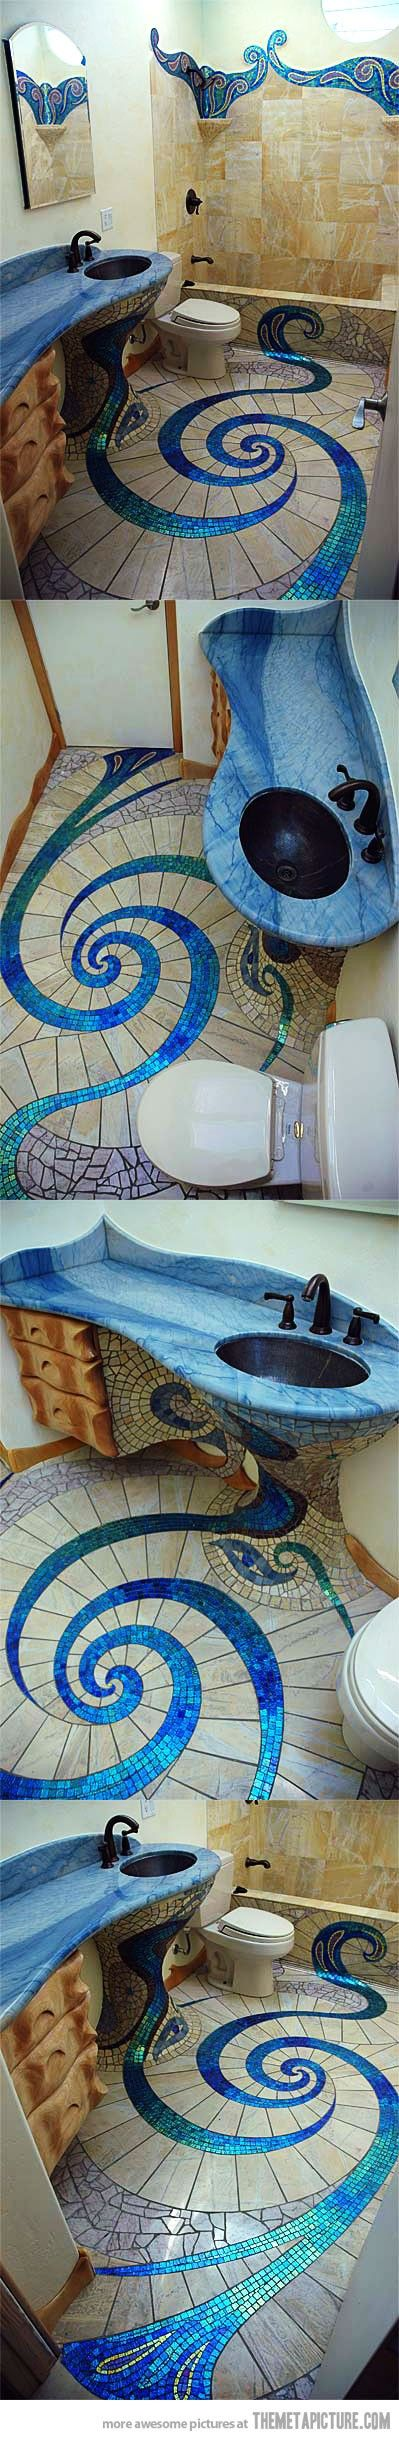 57 best tile images on pinterest bathroom tiles and restroom aquatic mosiac custom bathroom love it dailygadgetfo Choice Image